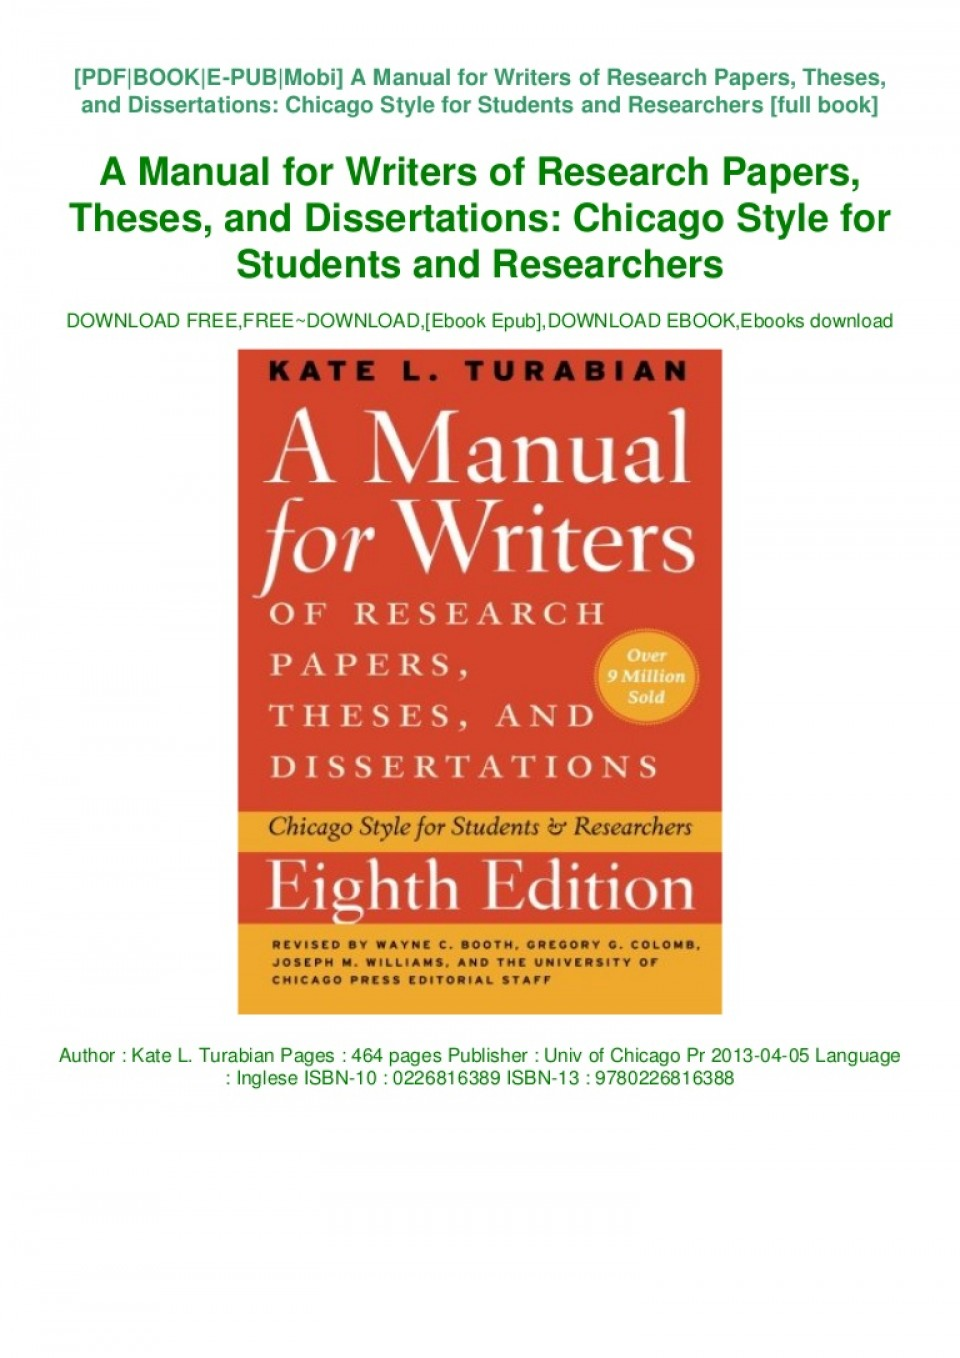 005 Manual For Writers Of Research Papers Theses And Dissertations Turabian Paper Book Thumbnail Amazing A Pdf 960